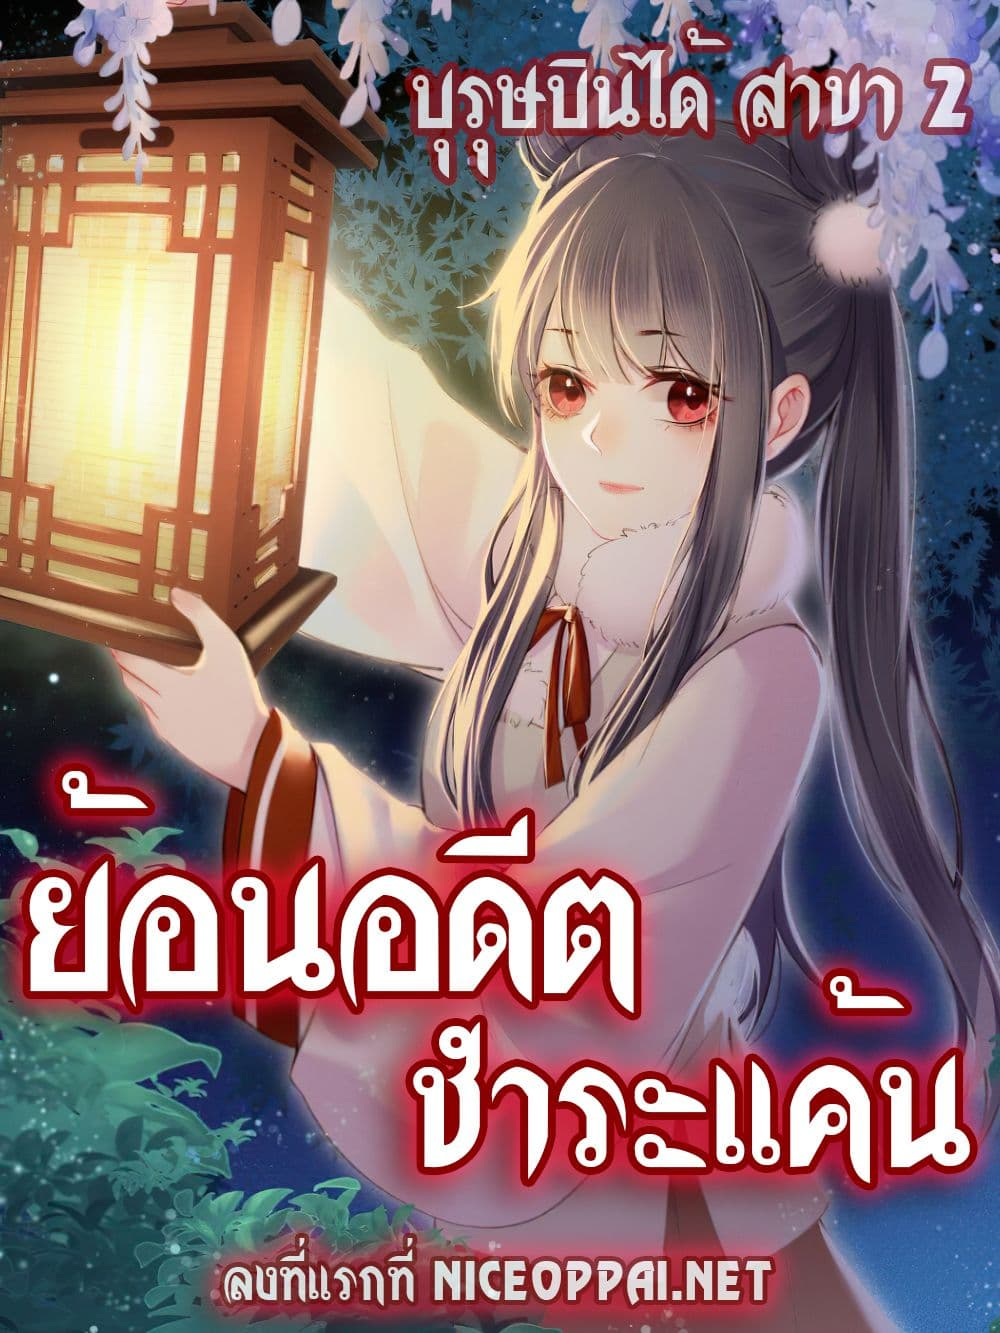 The Rebirth Daughter is not Good-ตอนที่ 11